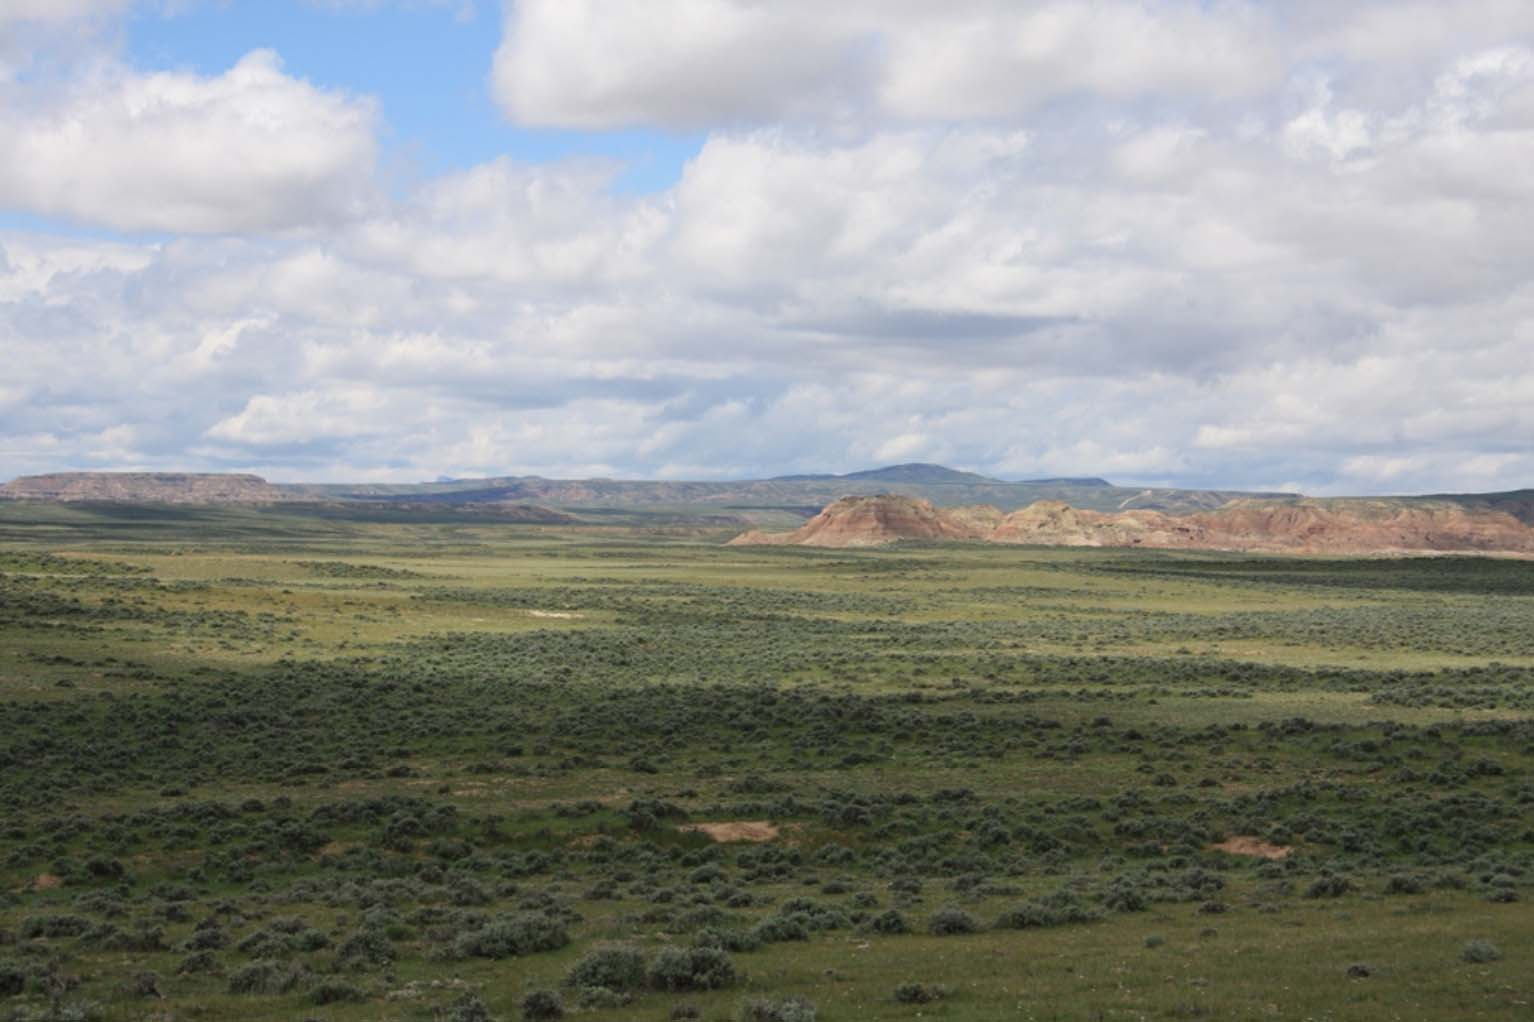 The still vast, virtually intact sagebrush-steppe ecosystem of Wyoming's Bighorn Basin remains a stronghold for the golden eagle and the Spirit of the American West. Photo by C.R. Preston.